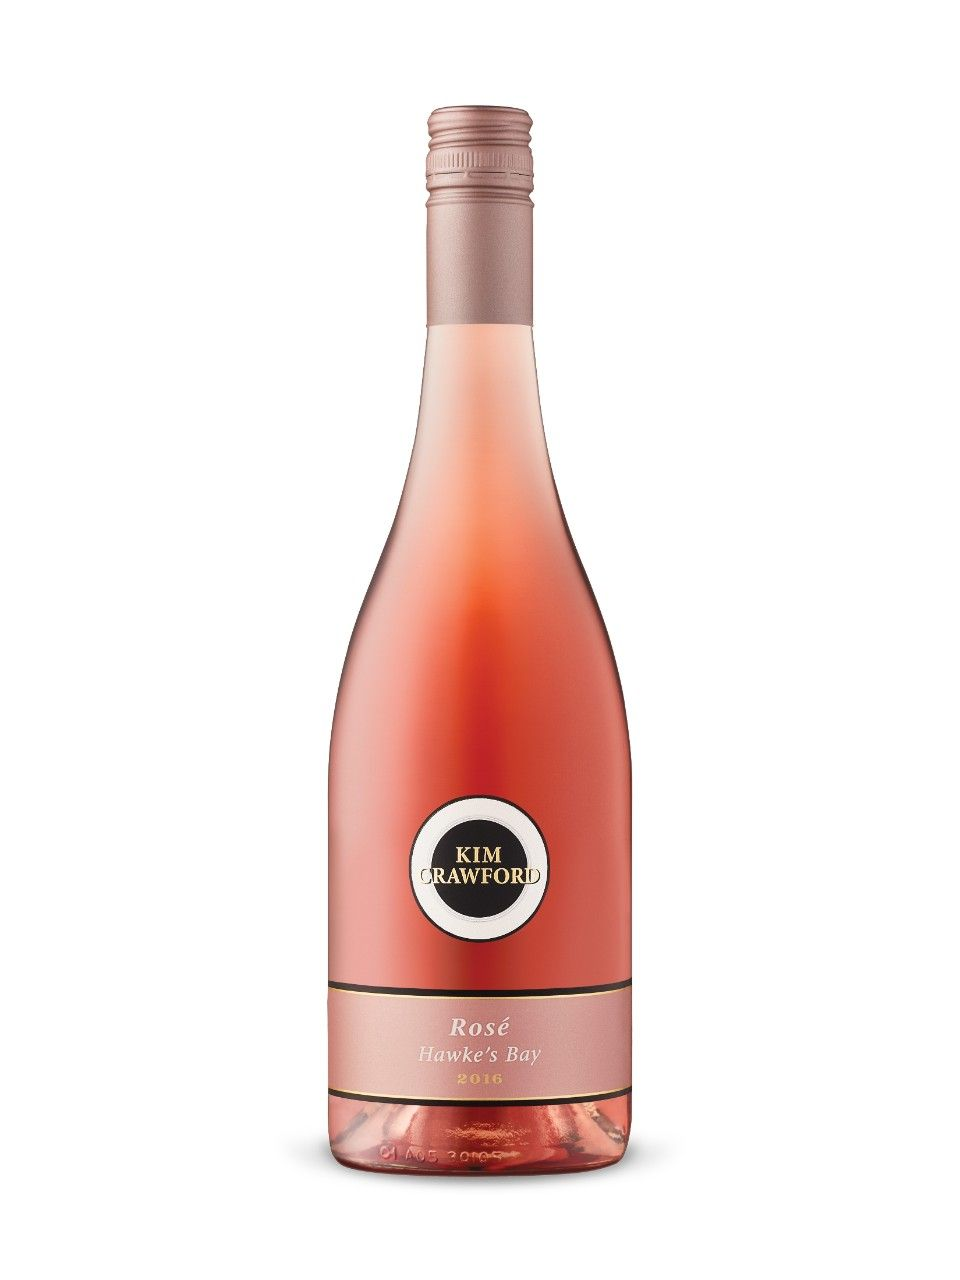 Kim Crawford Pansy Rose 2016 Hawkes Bay North Island New Zealand Natalie S Score 90 100 Http Www Nataliemaclean Com Wine Wine Sale Wine Mom Wine Night